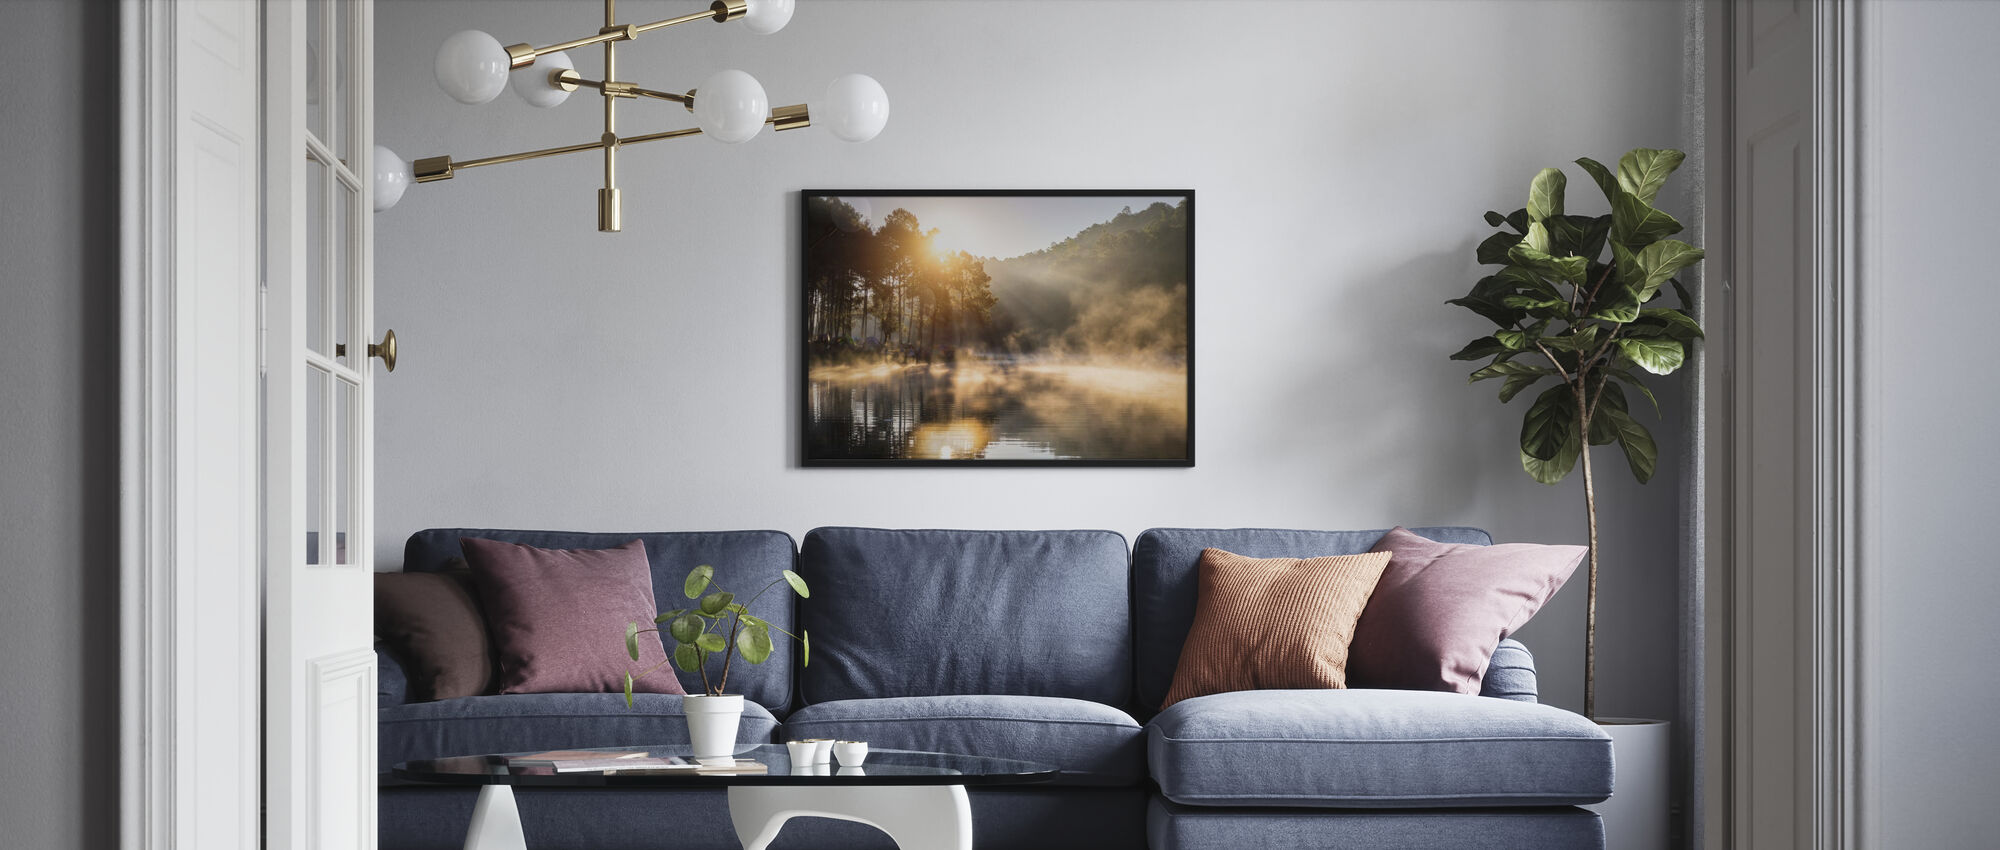 Camping in the Pine Forest - Poster - Living Room